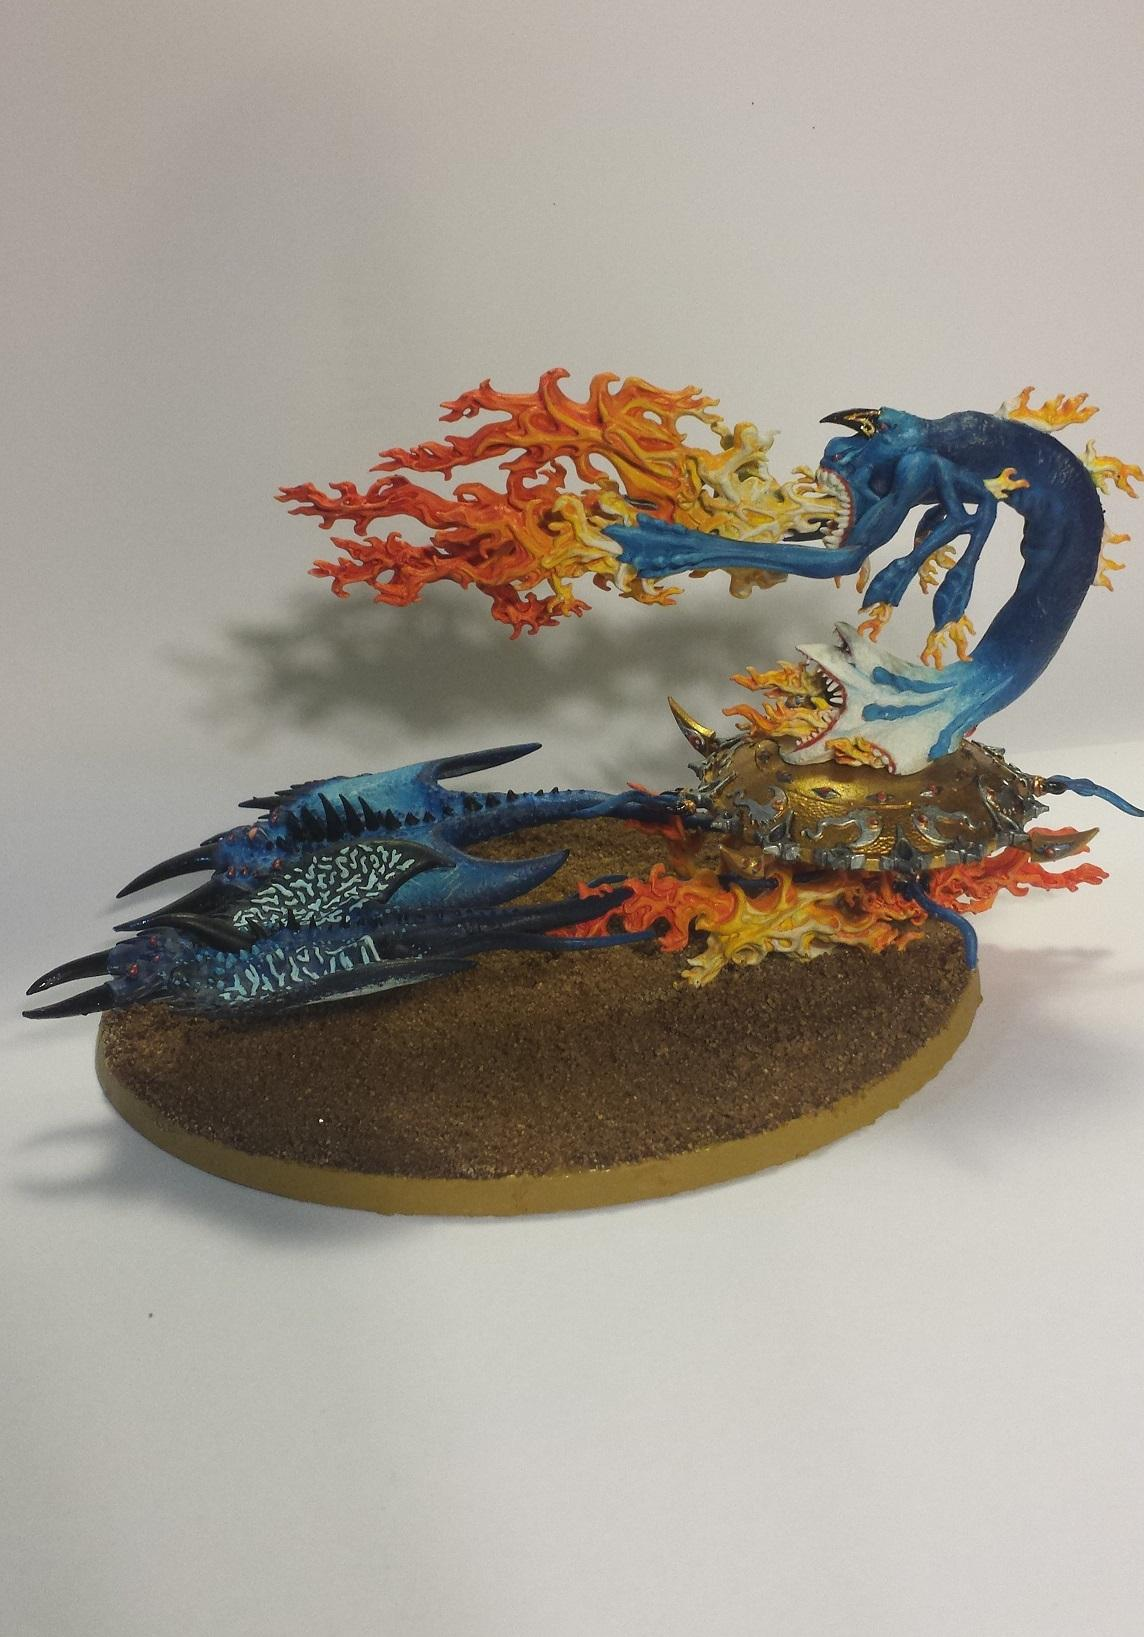 Burning Chariot, Chaos, Flamers, Screamers, Tzeentch